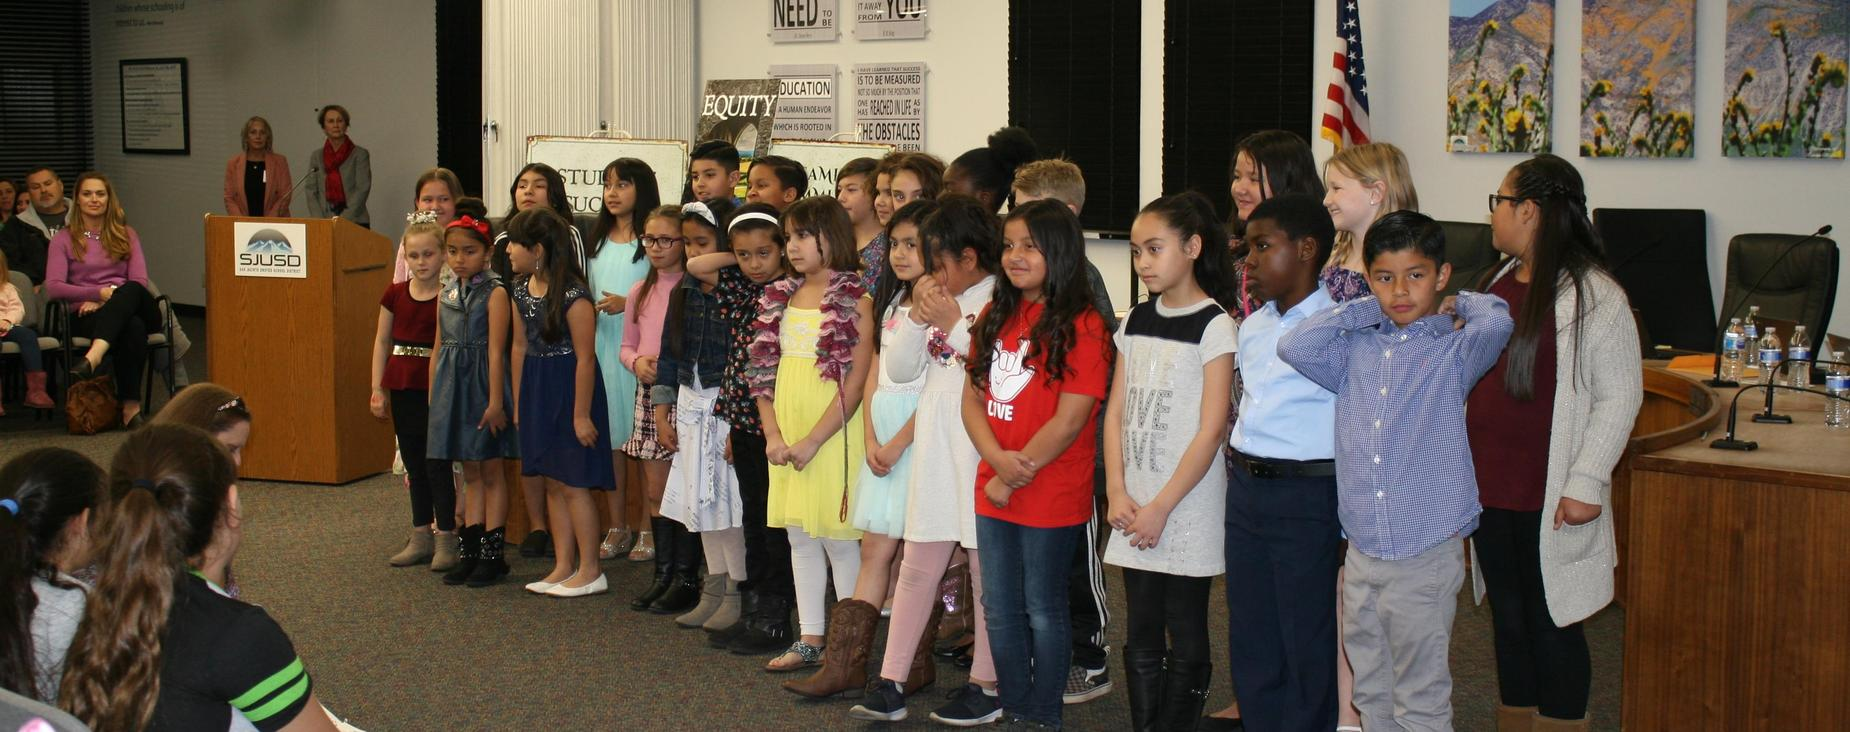 Record Elementary Ranchers choir performed at the February Board of Trustees meeting.